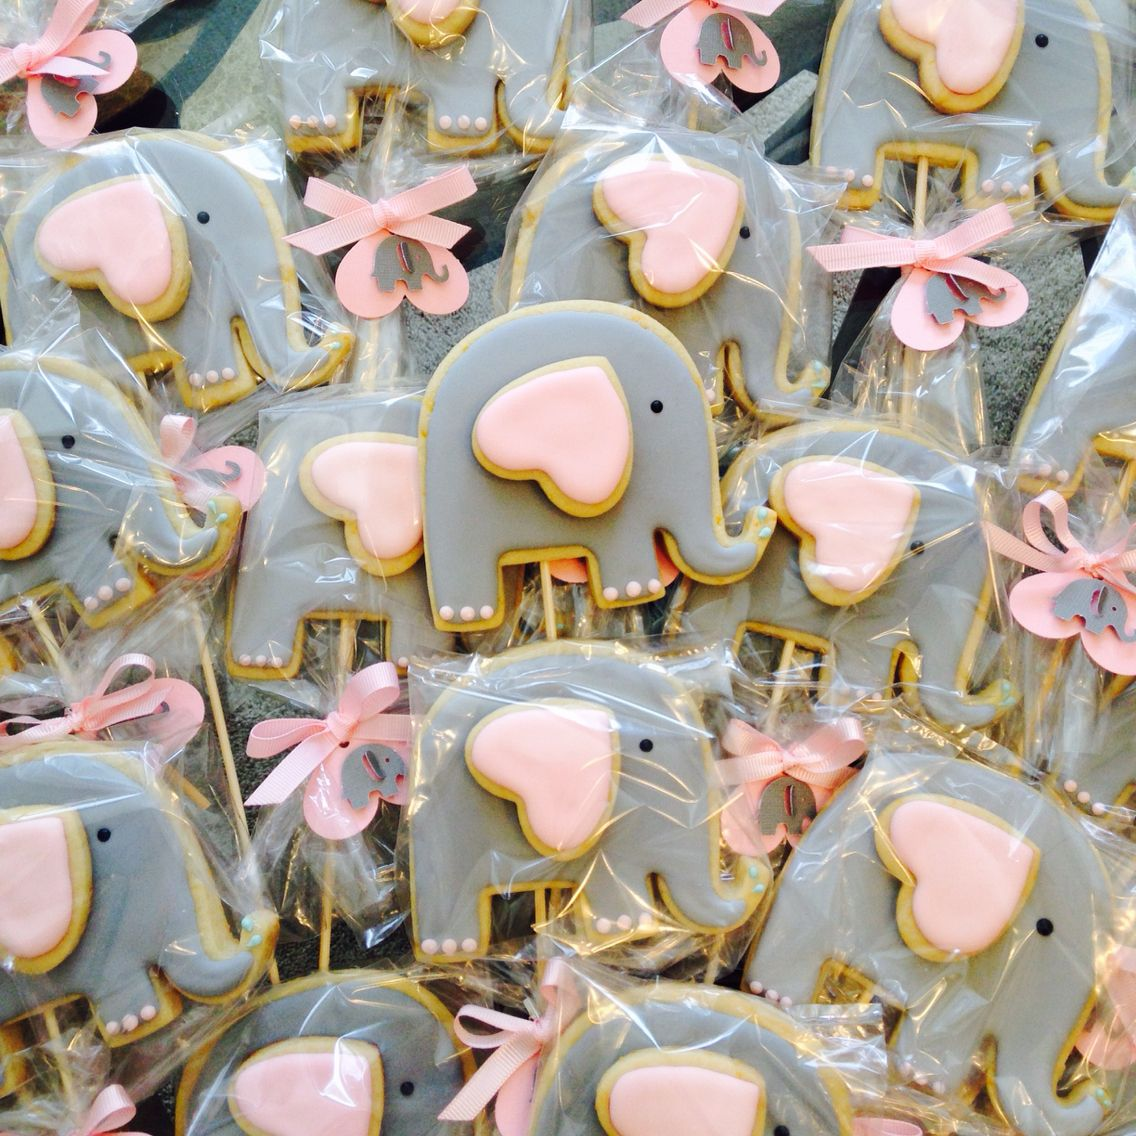 Gianna S Pink And Gray Elephant Nursery Reveal: Elephant Sugar Cookies, Elephant Party Favors, Baby Shower